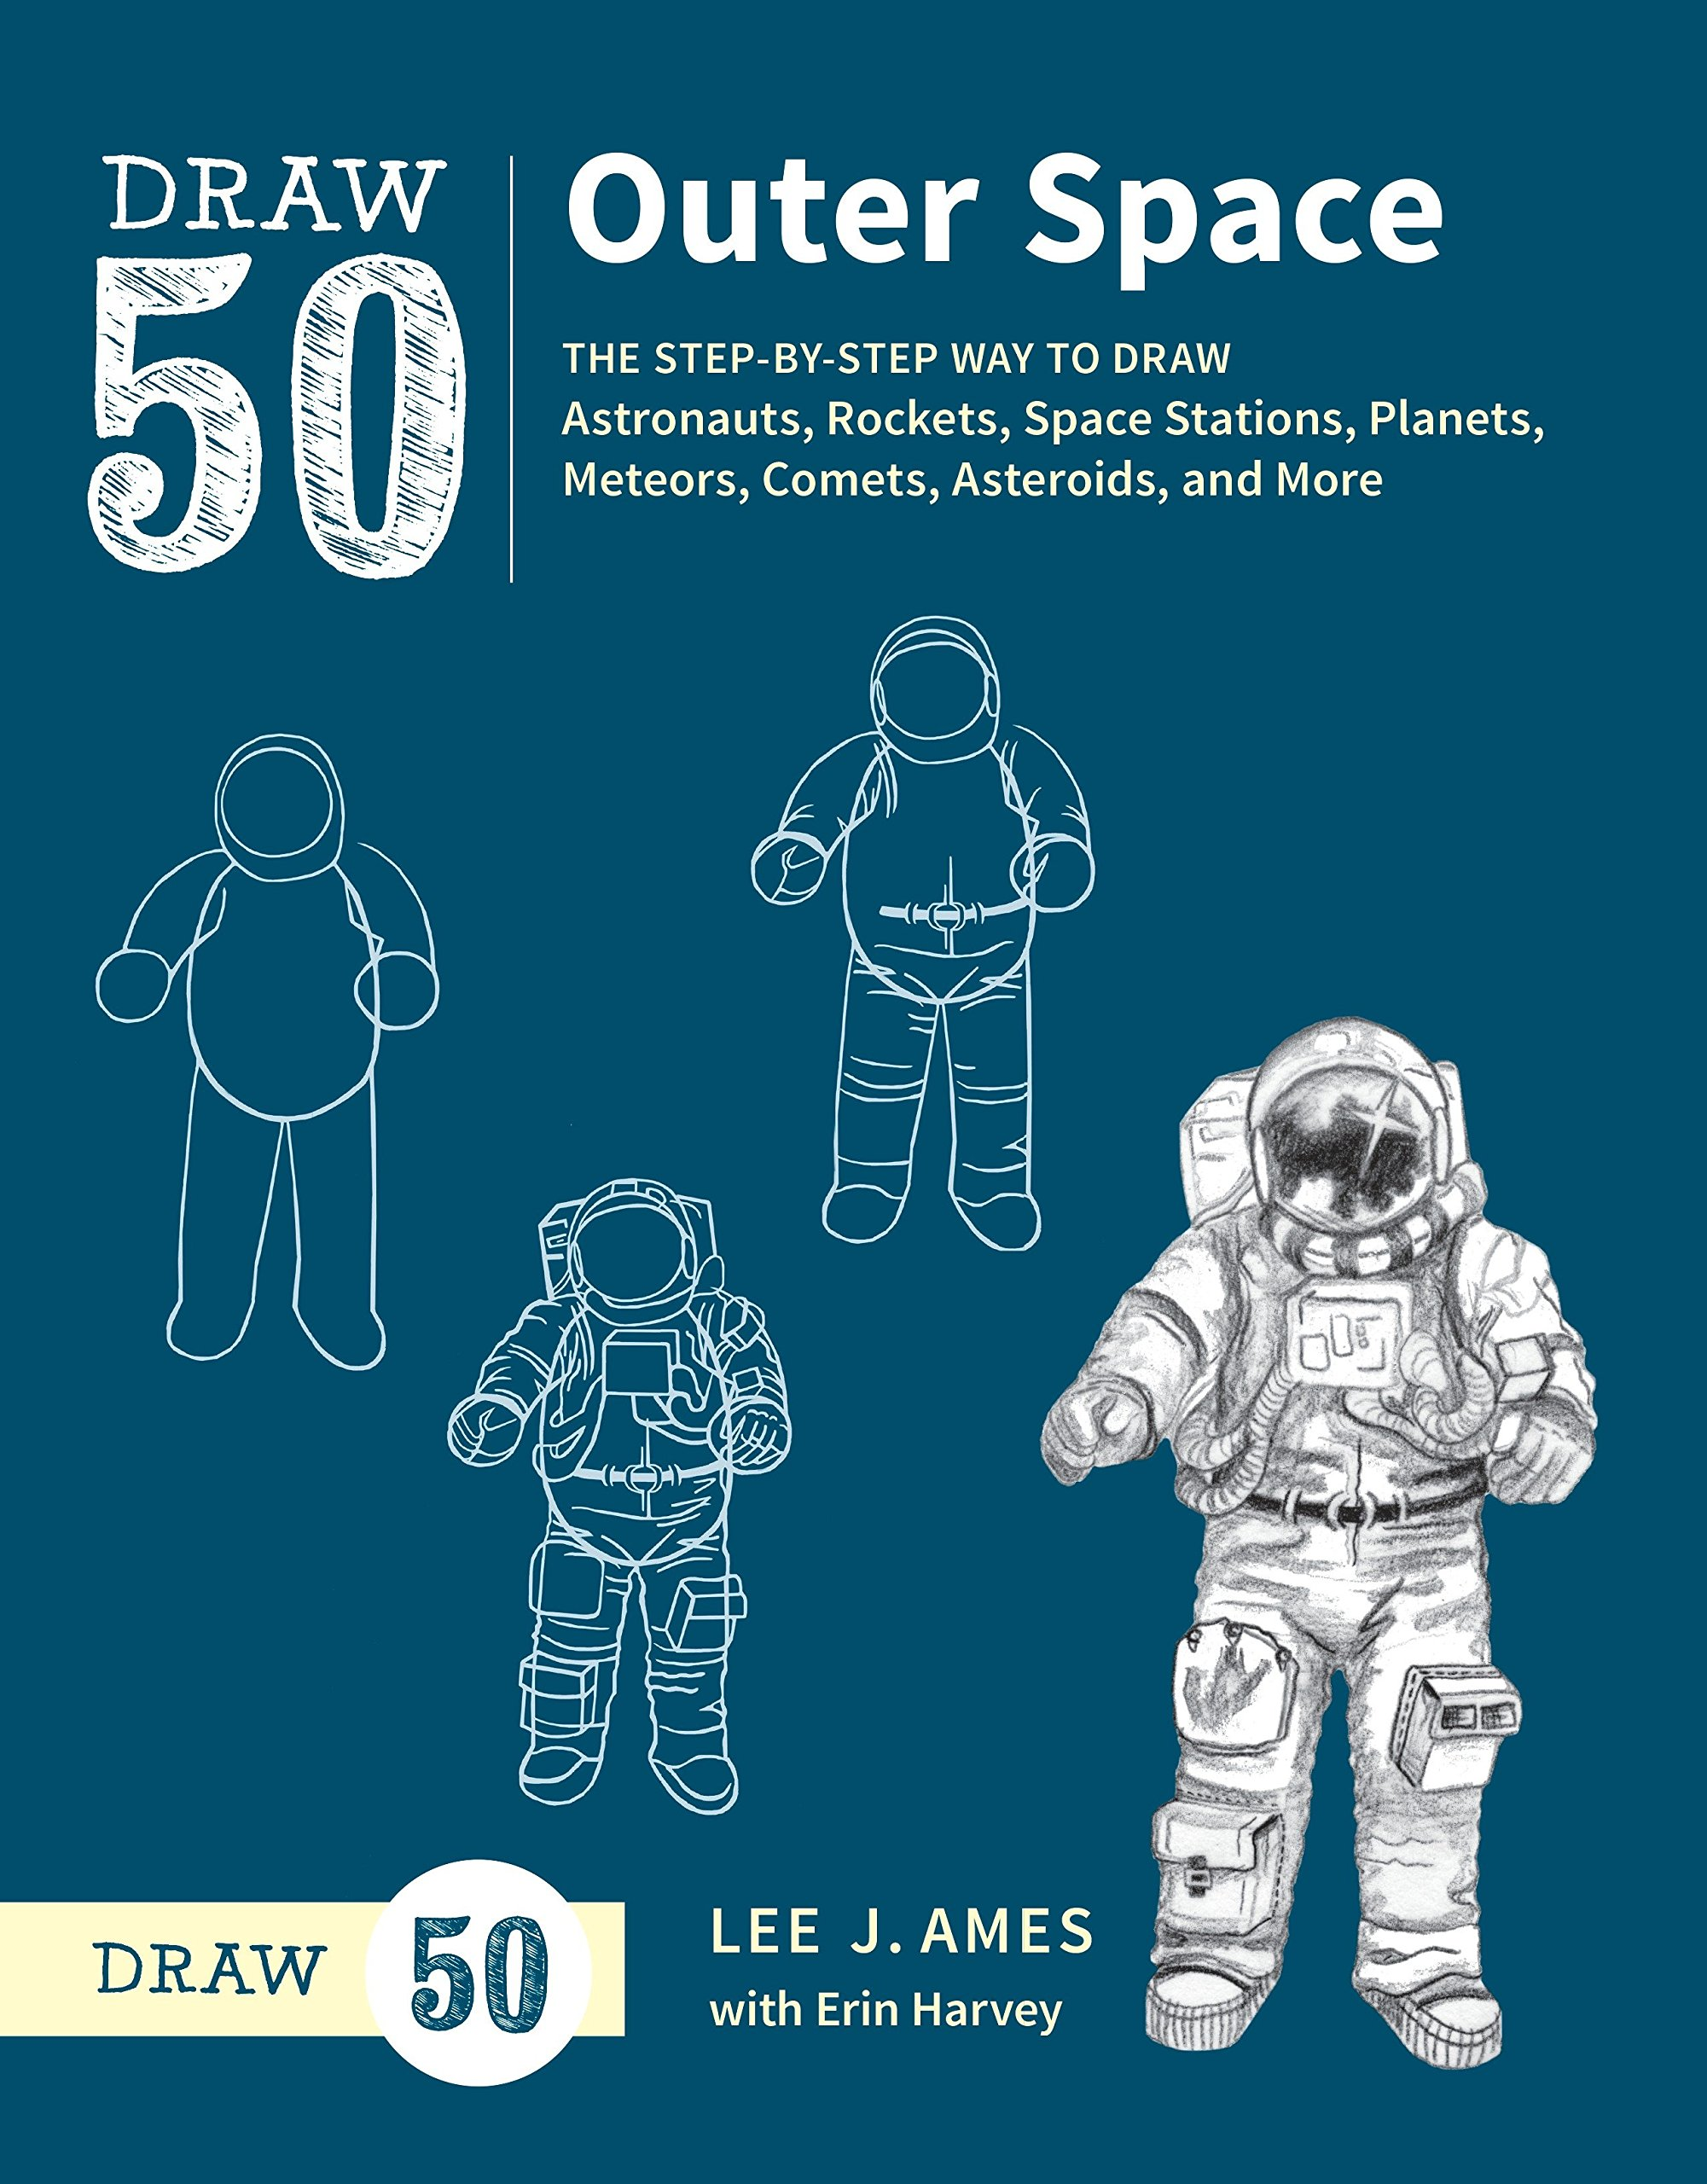 Draw 50 Outer Space: The Step-by-Step Way to Draw Astronauts